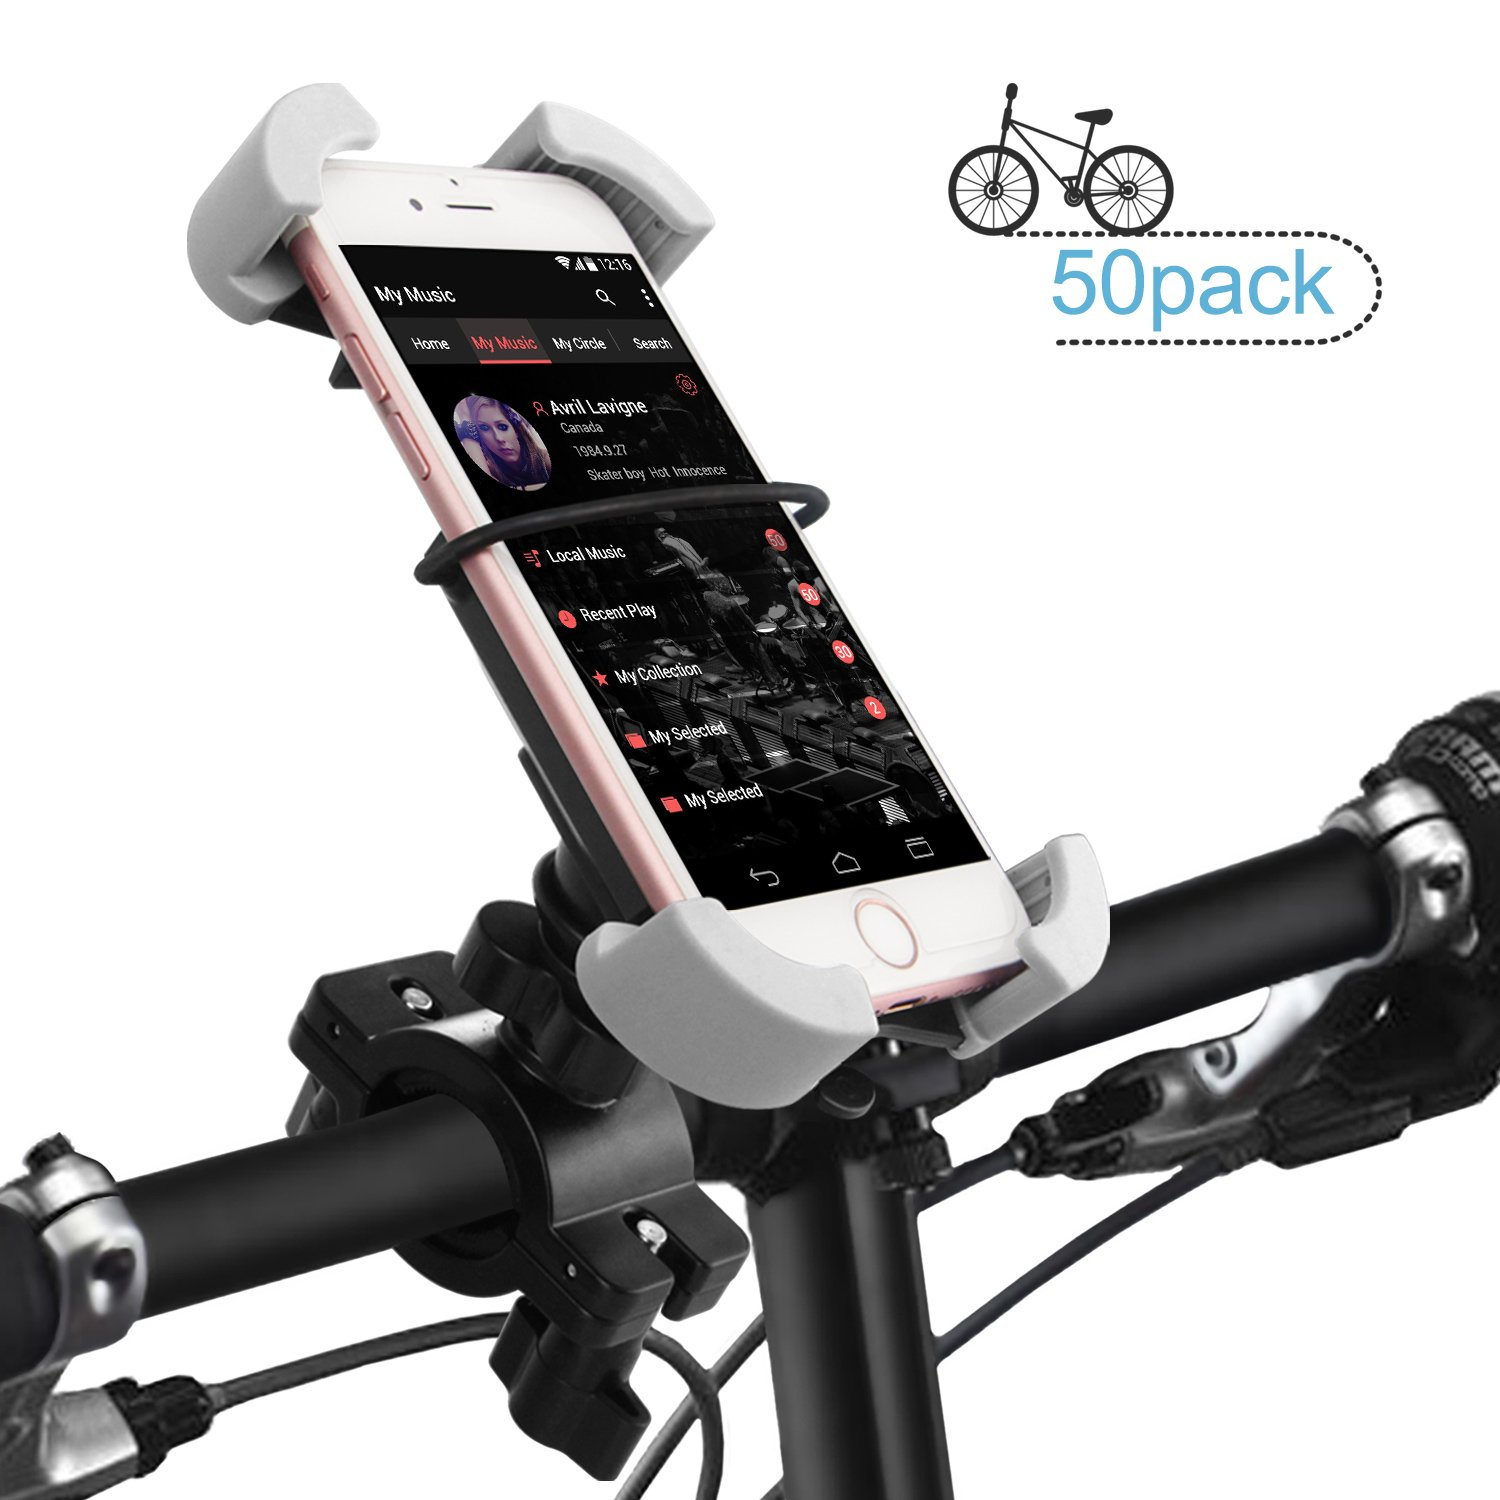 Bike Phone Holder Mount, ilikable 50 Pack Universal Bicycle Motorcycle Handlebar Cell Phone Mount Cradle for iPhone 8 8 Plus 7 7 Plus 6s 6 Plus 5s Android Smartphones